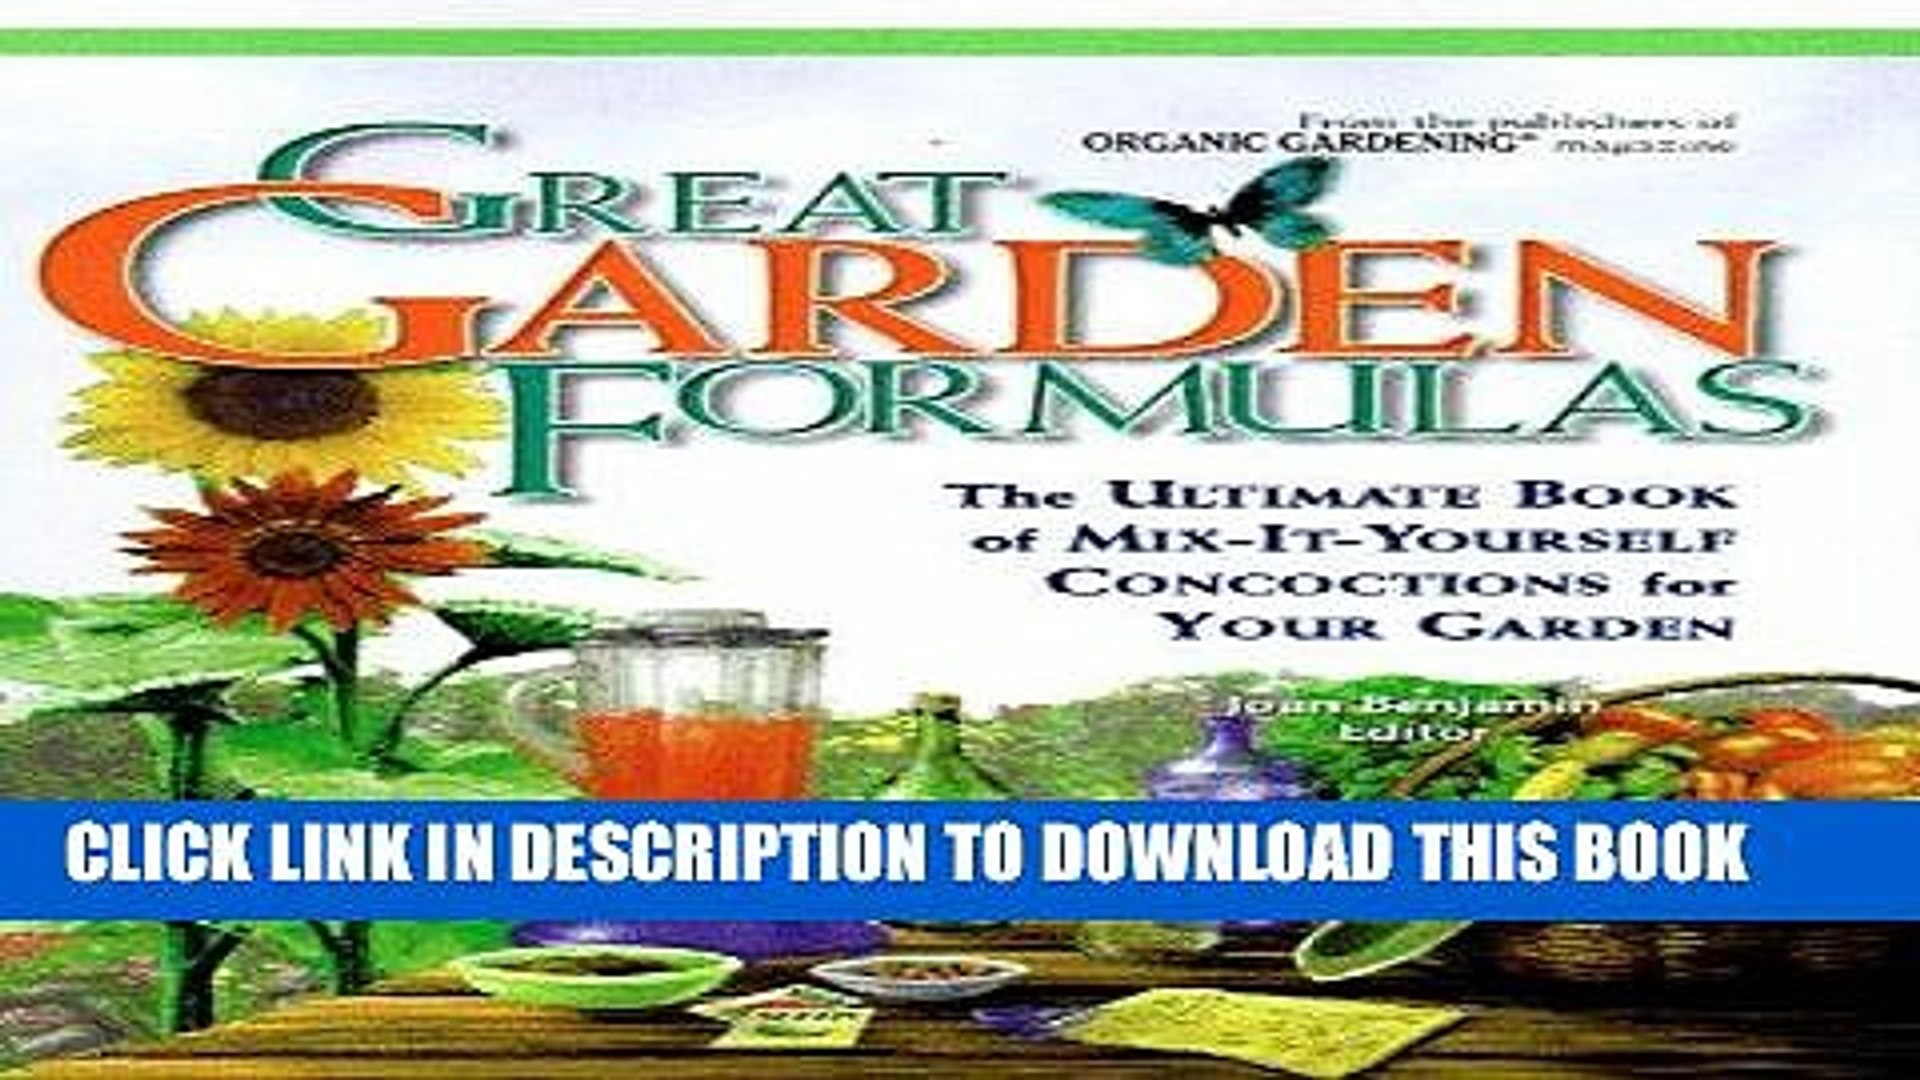 Read Now Great Garden Formulas : The Ultimate Book of Mix-It-Yourself Concoctions for Gardeners